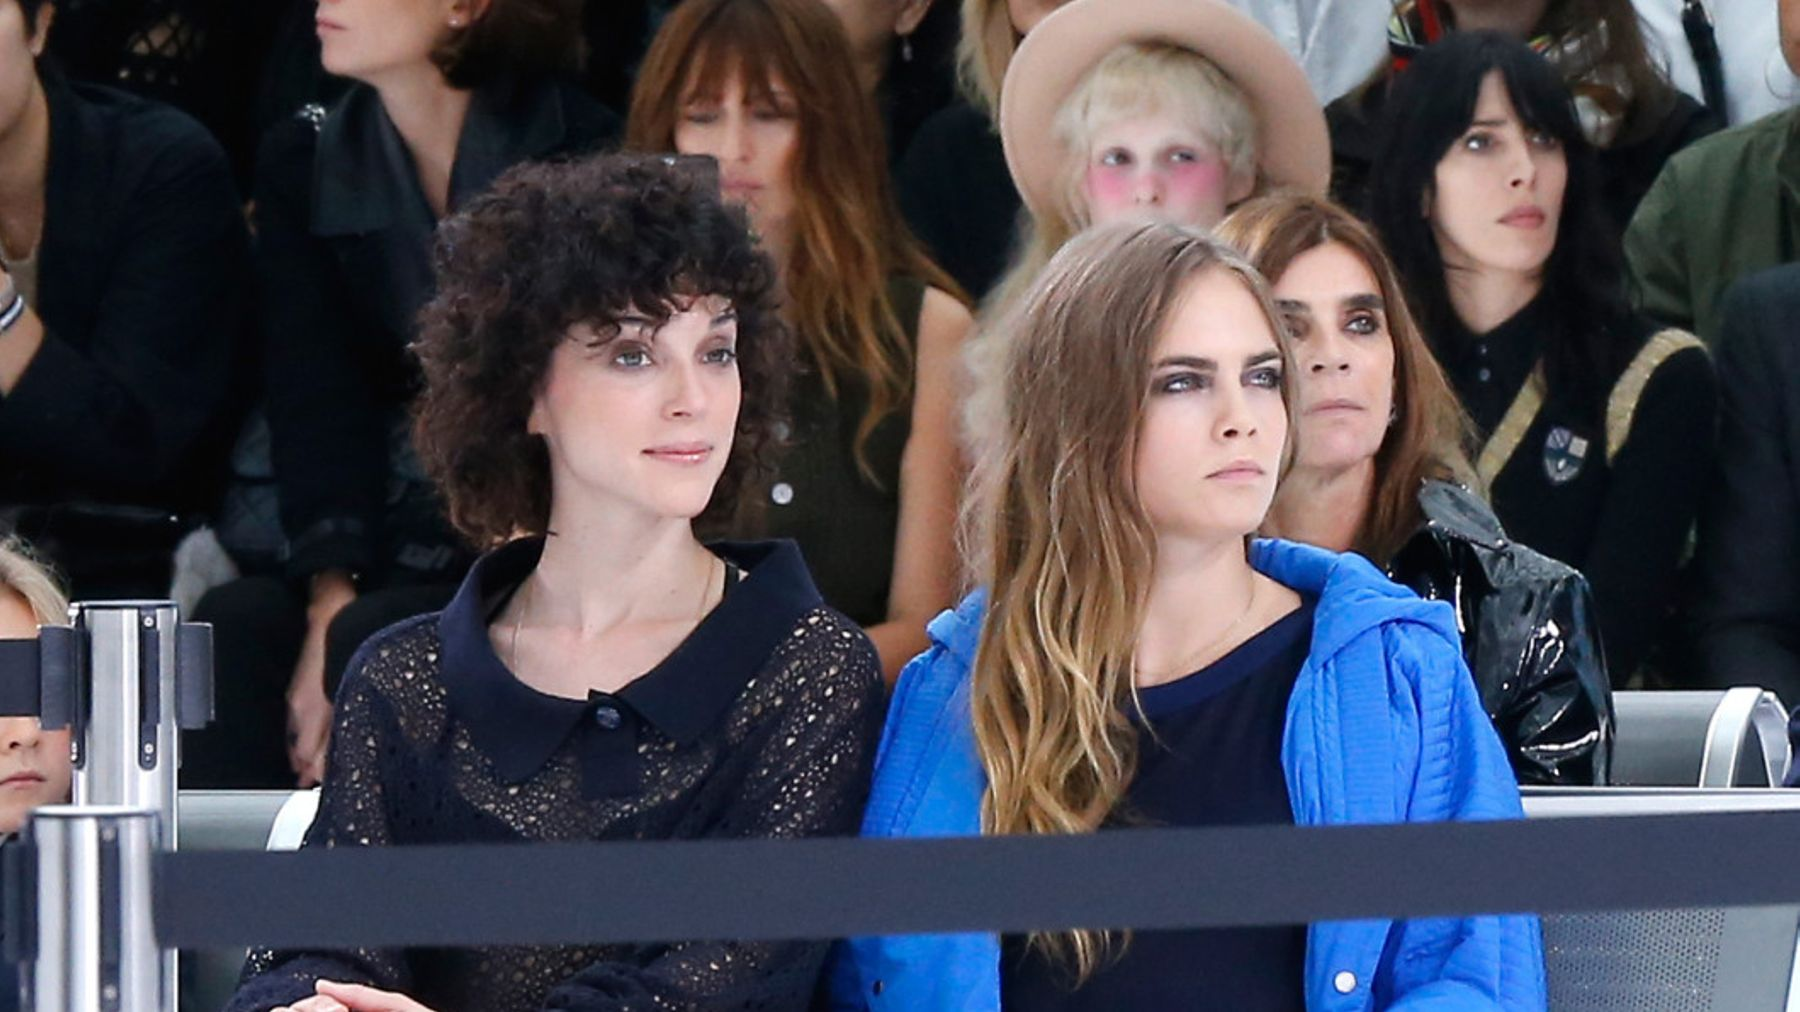 Cara Delevingne And St Vincent Wear Matching Rings On Their